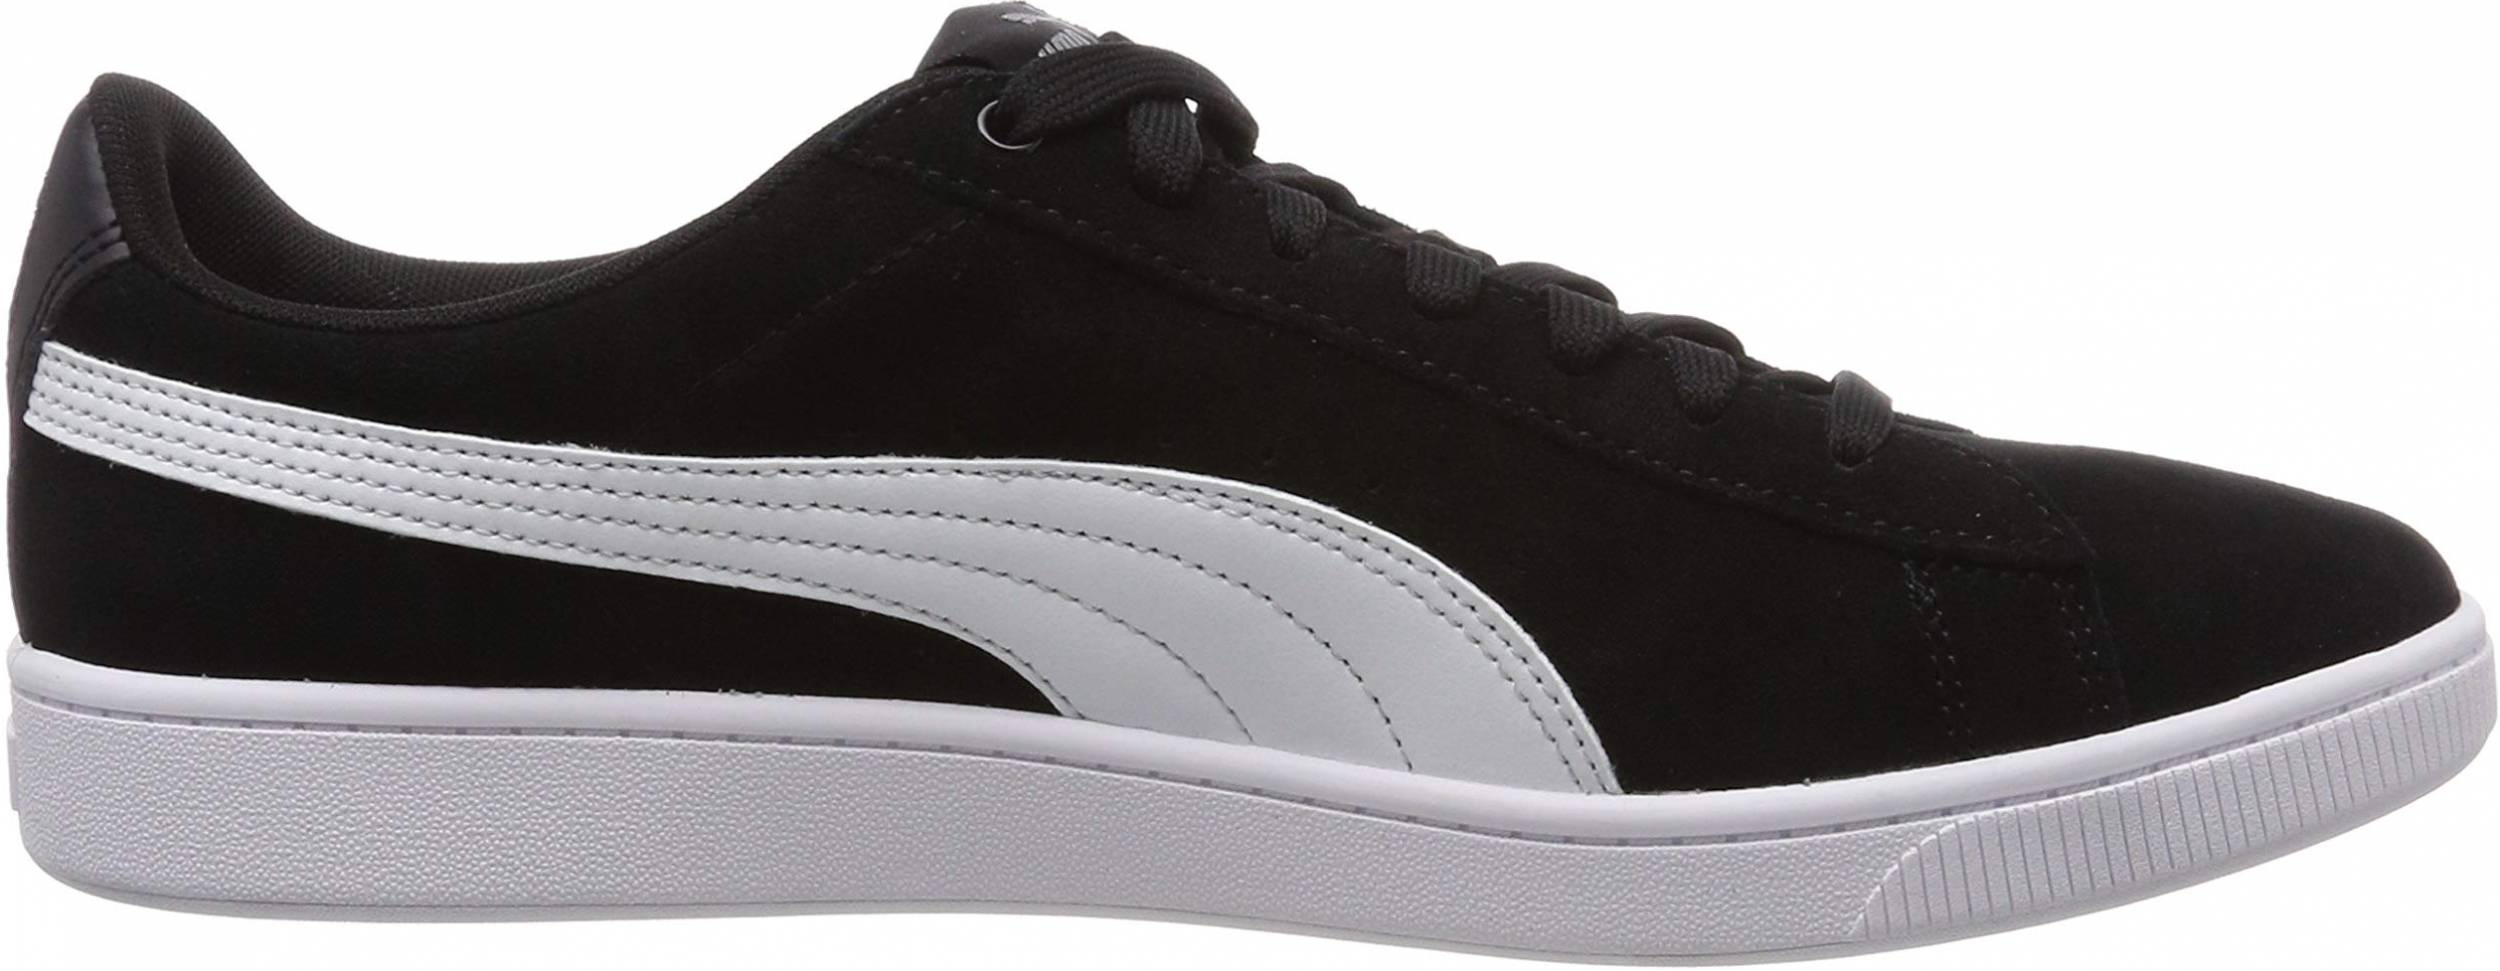 Puma Vikky v2 sneakers (only $42) | RunRepeat